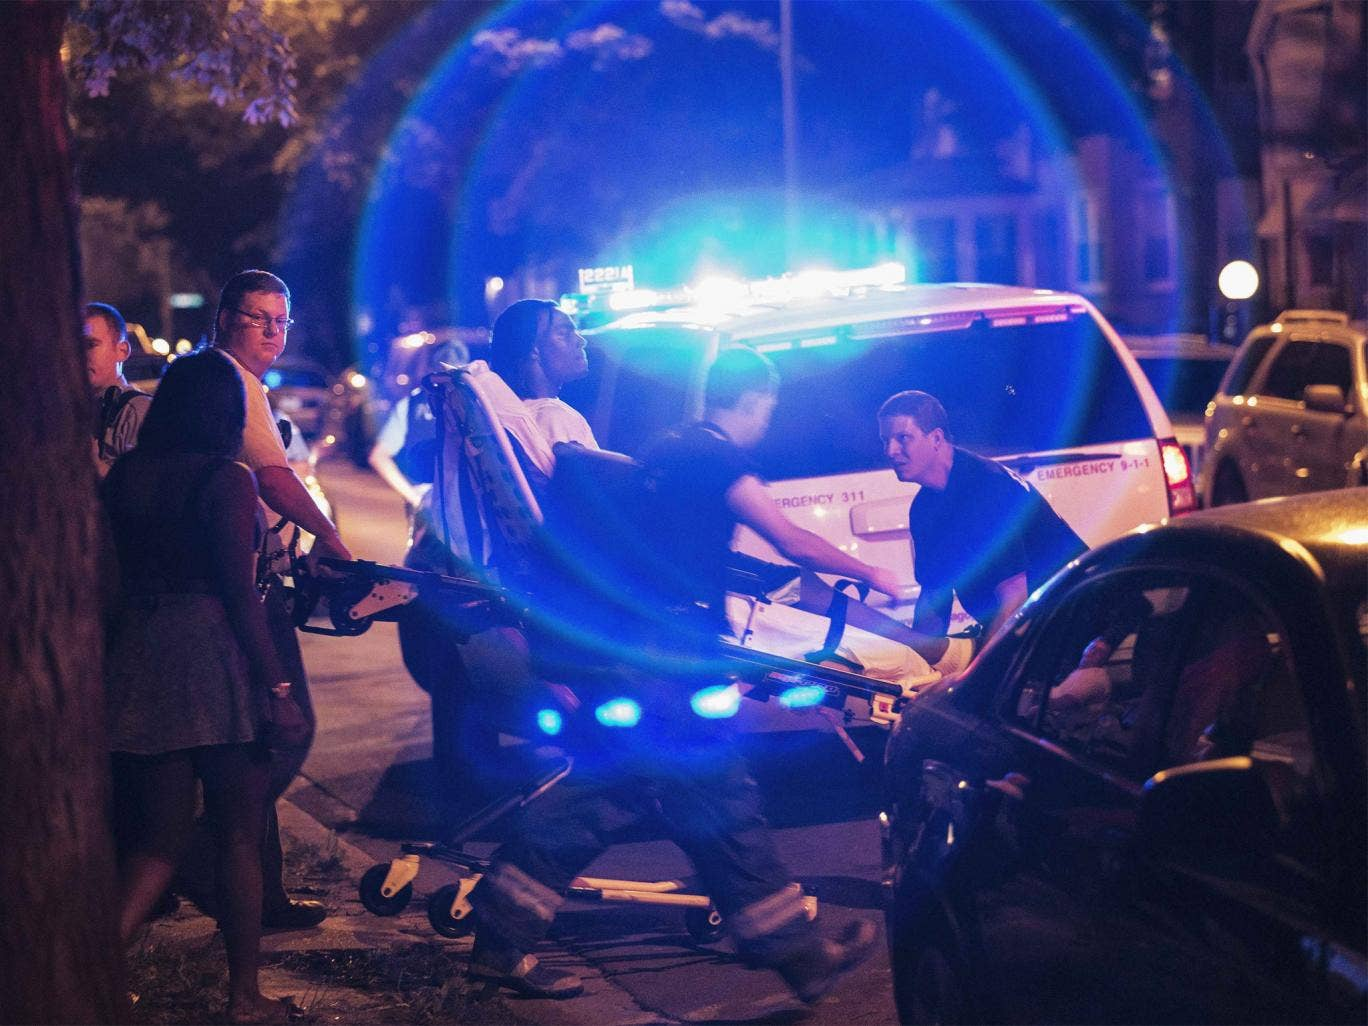 A man is wheeled on a stretcher after being shot in the leg on Chicago's South Side on July 6